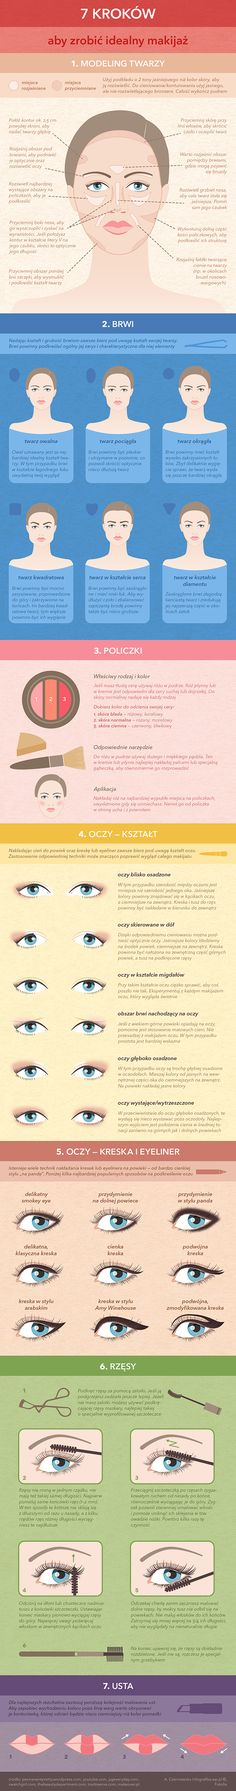 Make-up in a nutshell. Makeup Inspo, Makeup Inspiration, Beauty Makeup, Eye Makeup, Prom Makeup, Make Up Tricks, How To Make, Lipstick Tutorial, Essential Oils For Skin